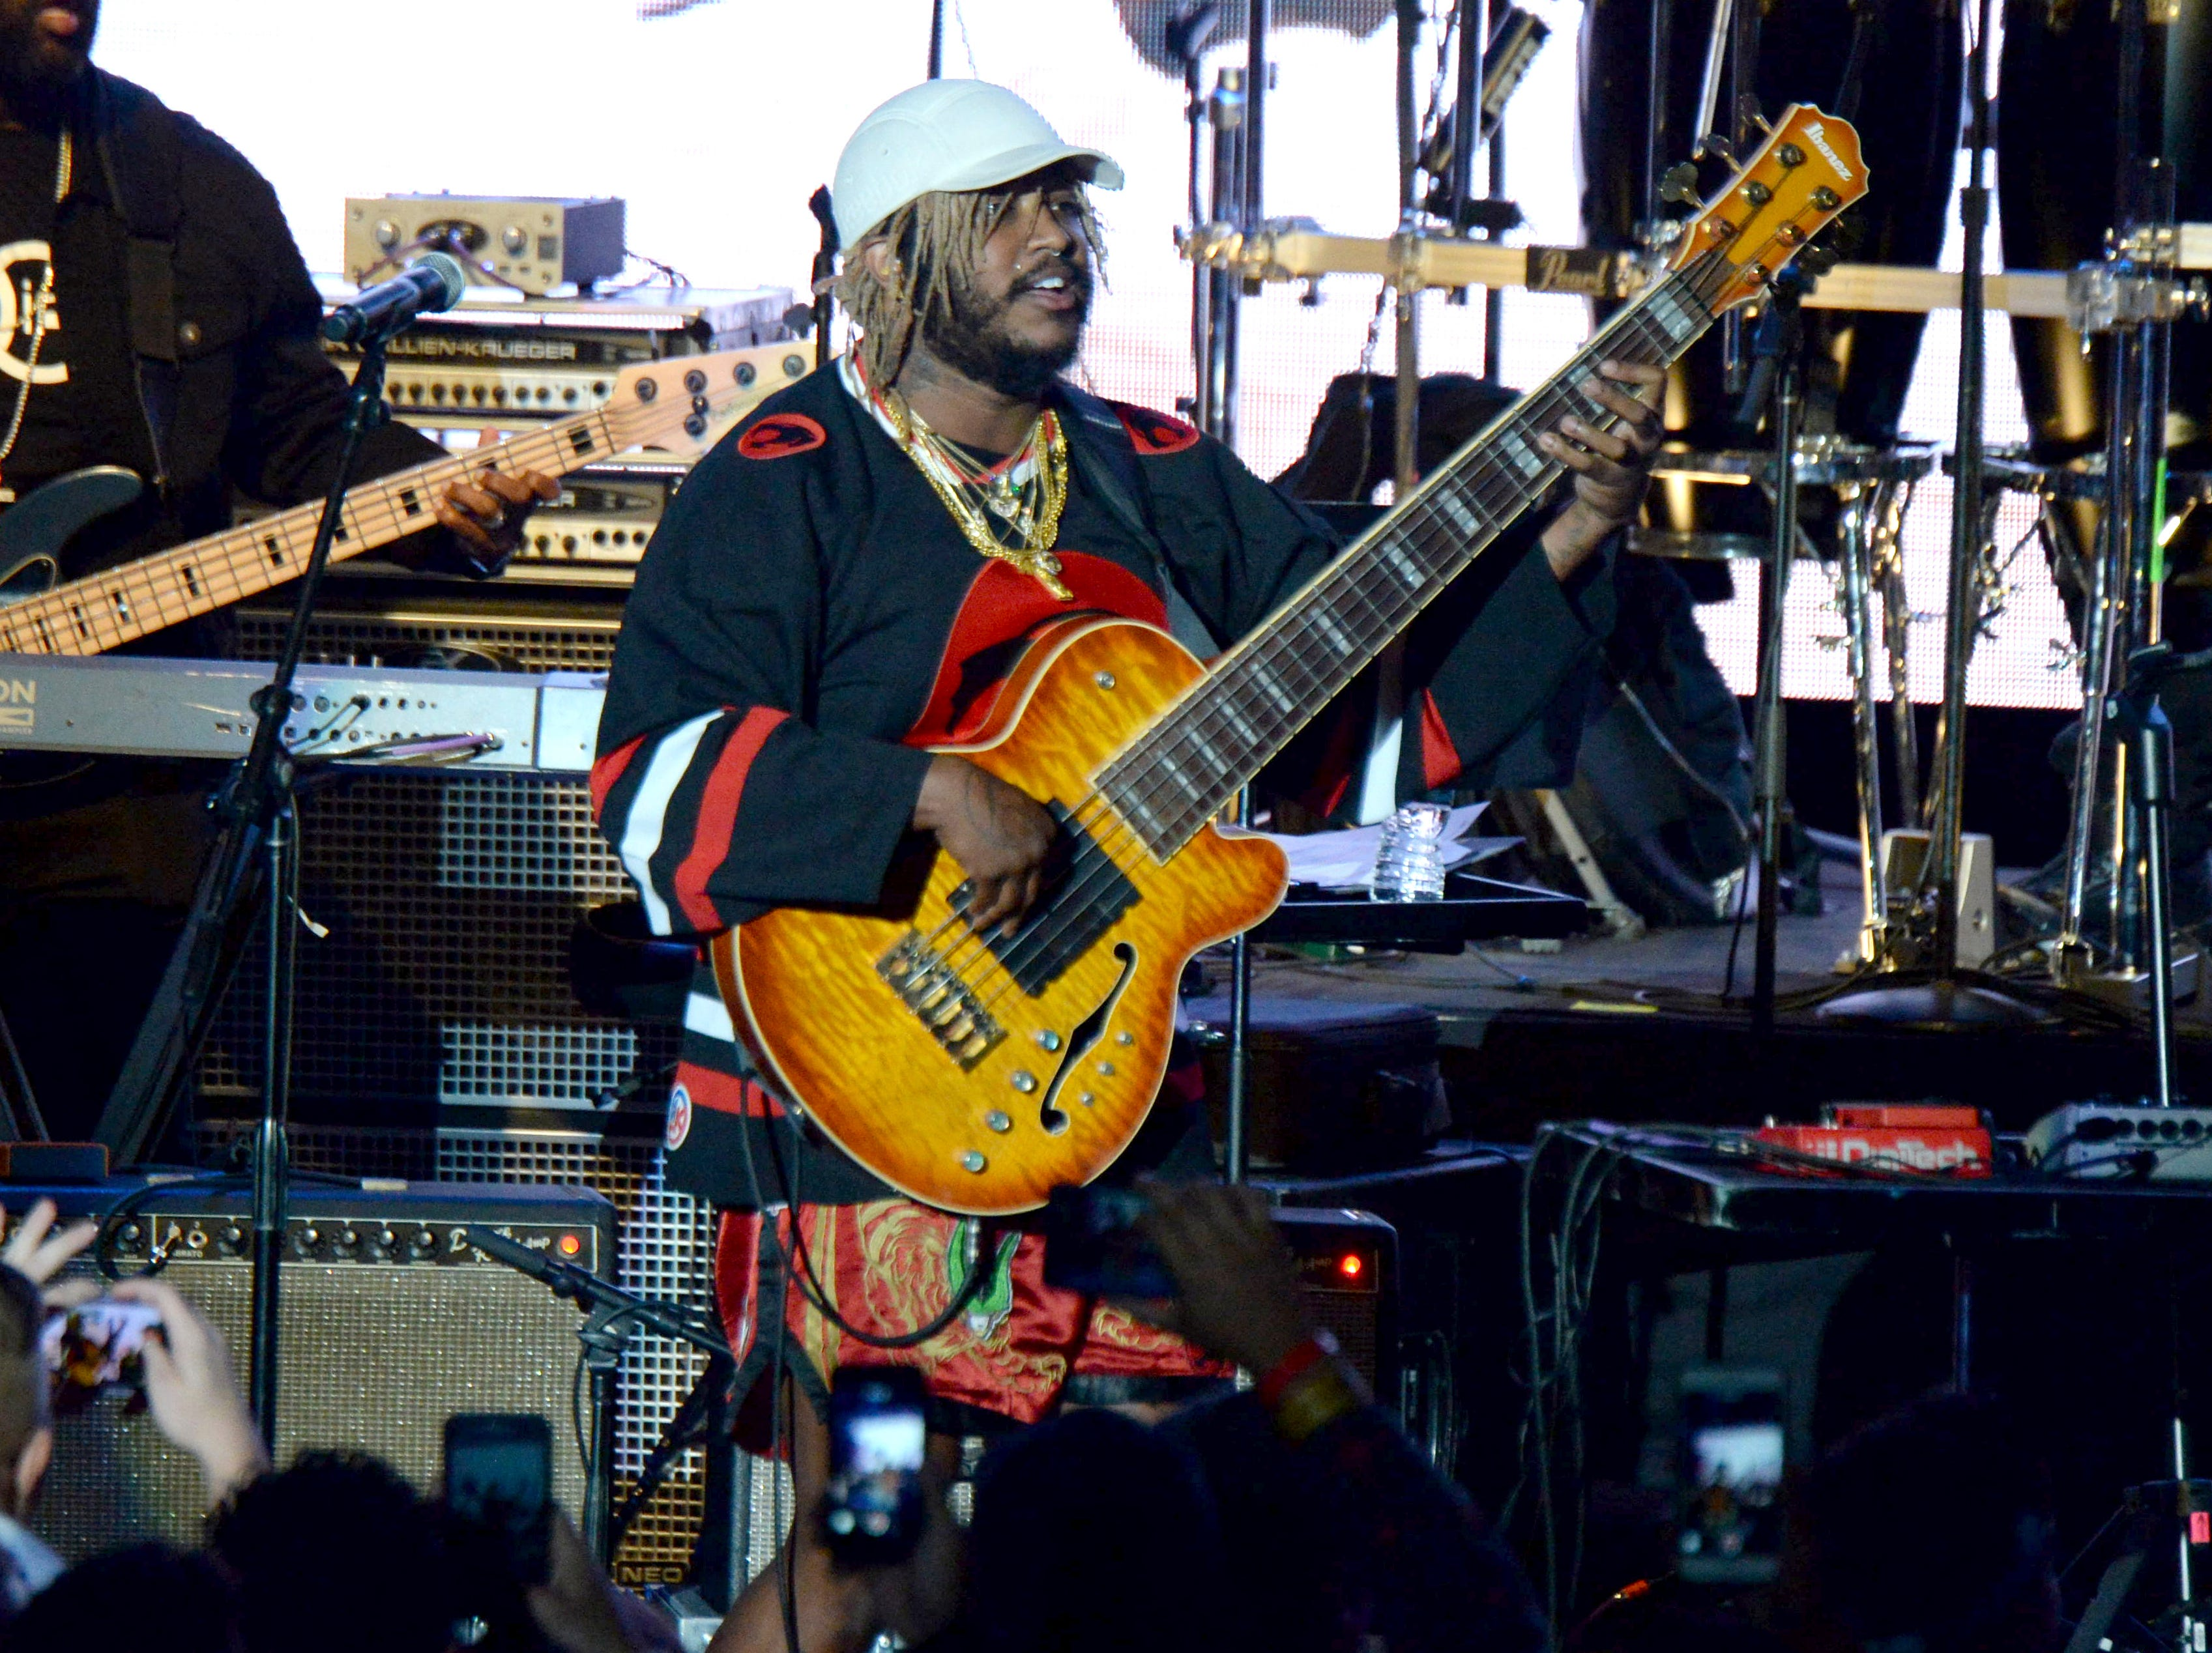 Thundercat performs during the tribute event Mac Miller: A Celebration of Life on Wednesday, Oct. 31, 2018, at the Greek Theatre in Los Angeles. (Photo by Amy Harris/Invision/AP) ORG XMIT: CAPM117